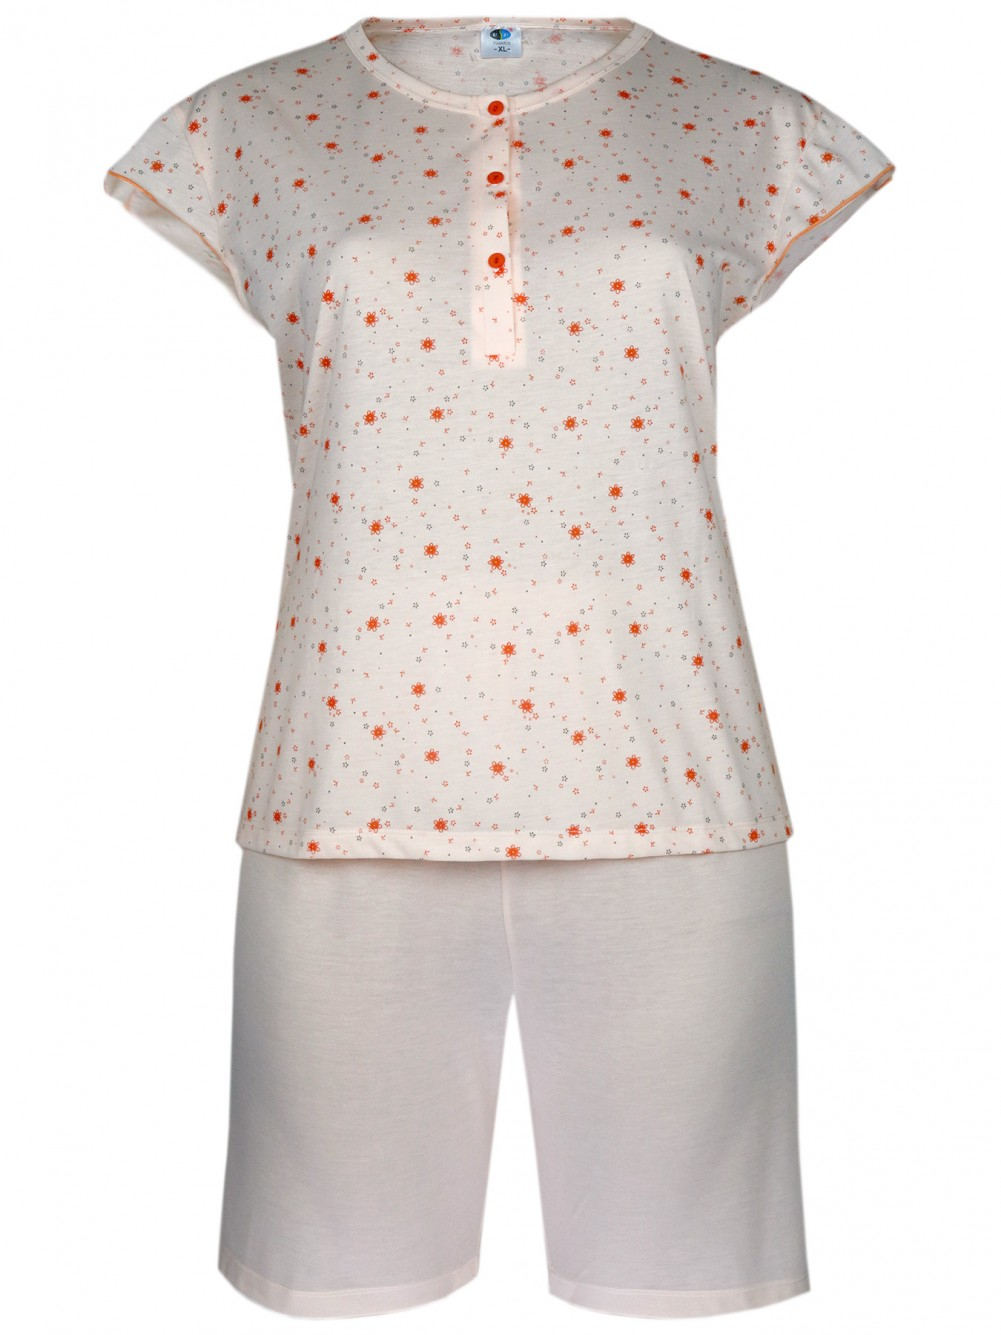 Damen Kurz-Pyjama, Shorty Set 100% Baumwolle - Orange